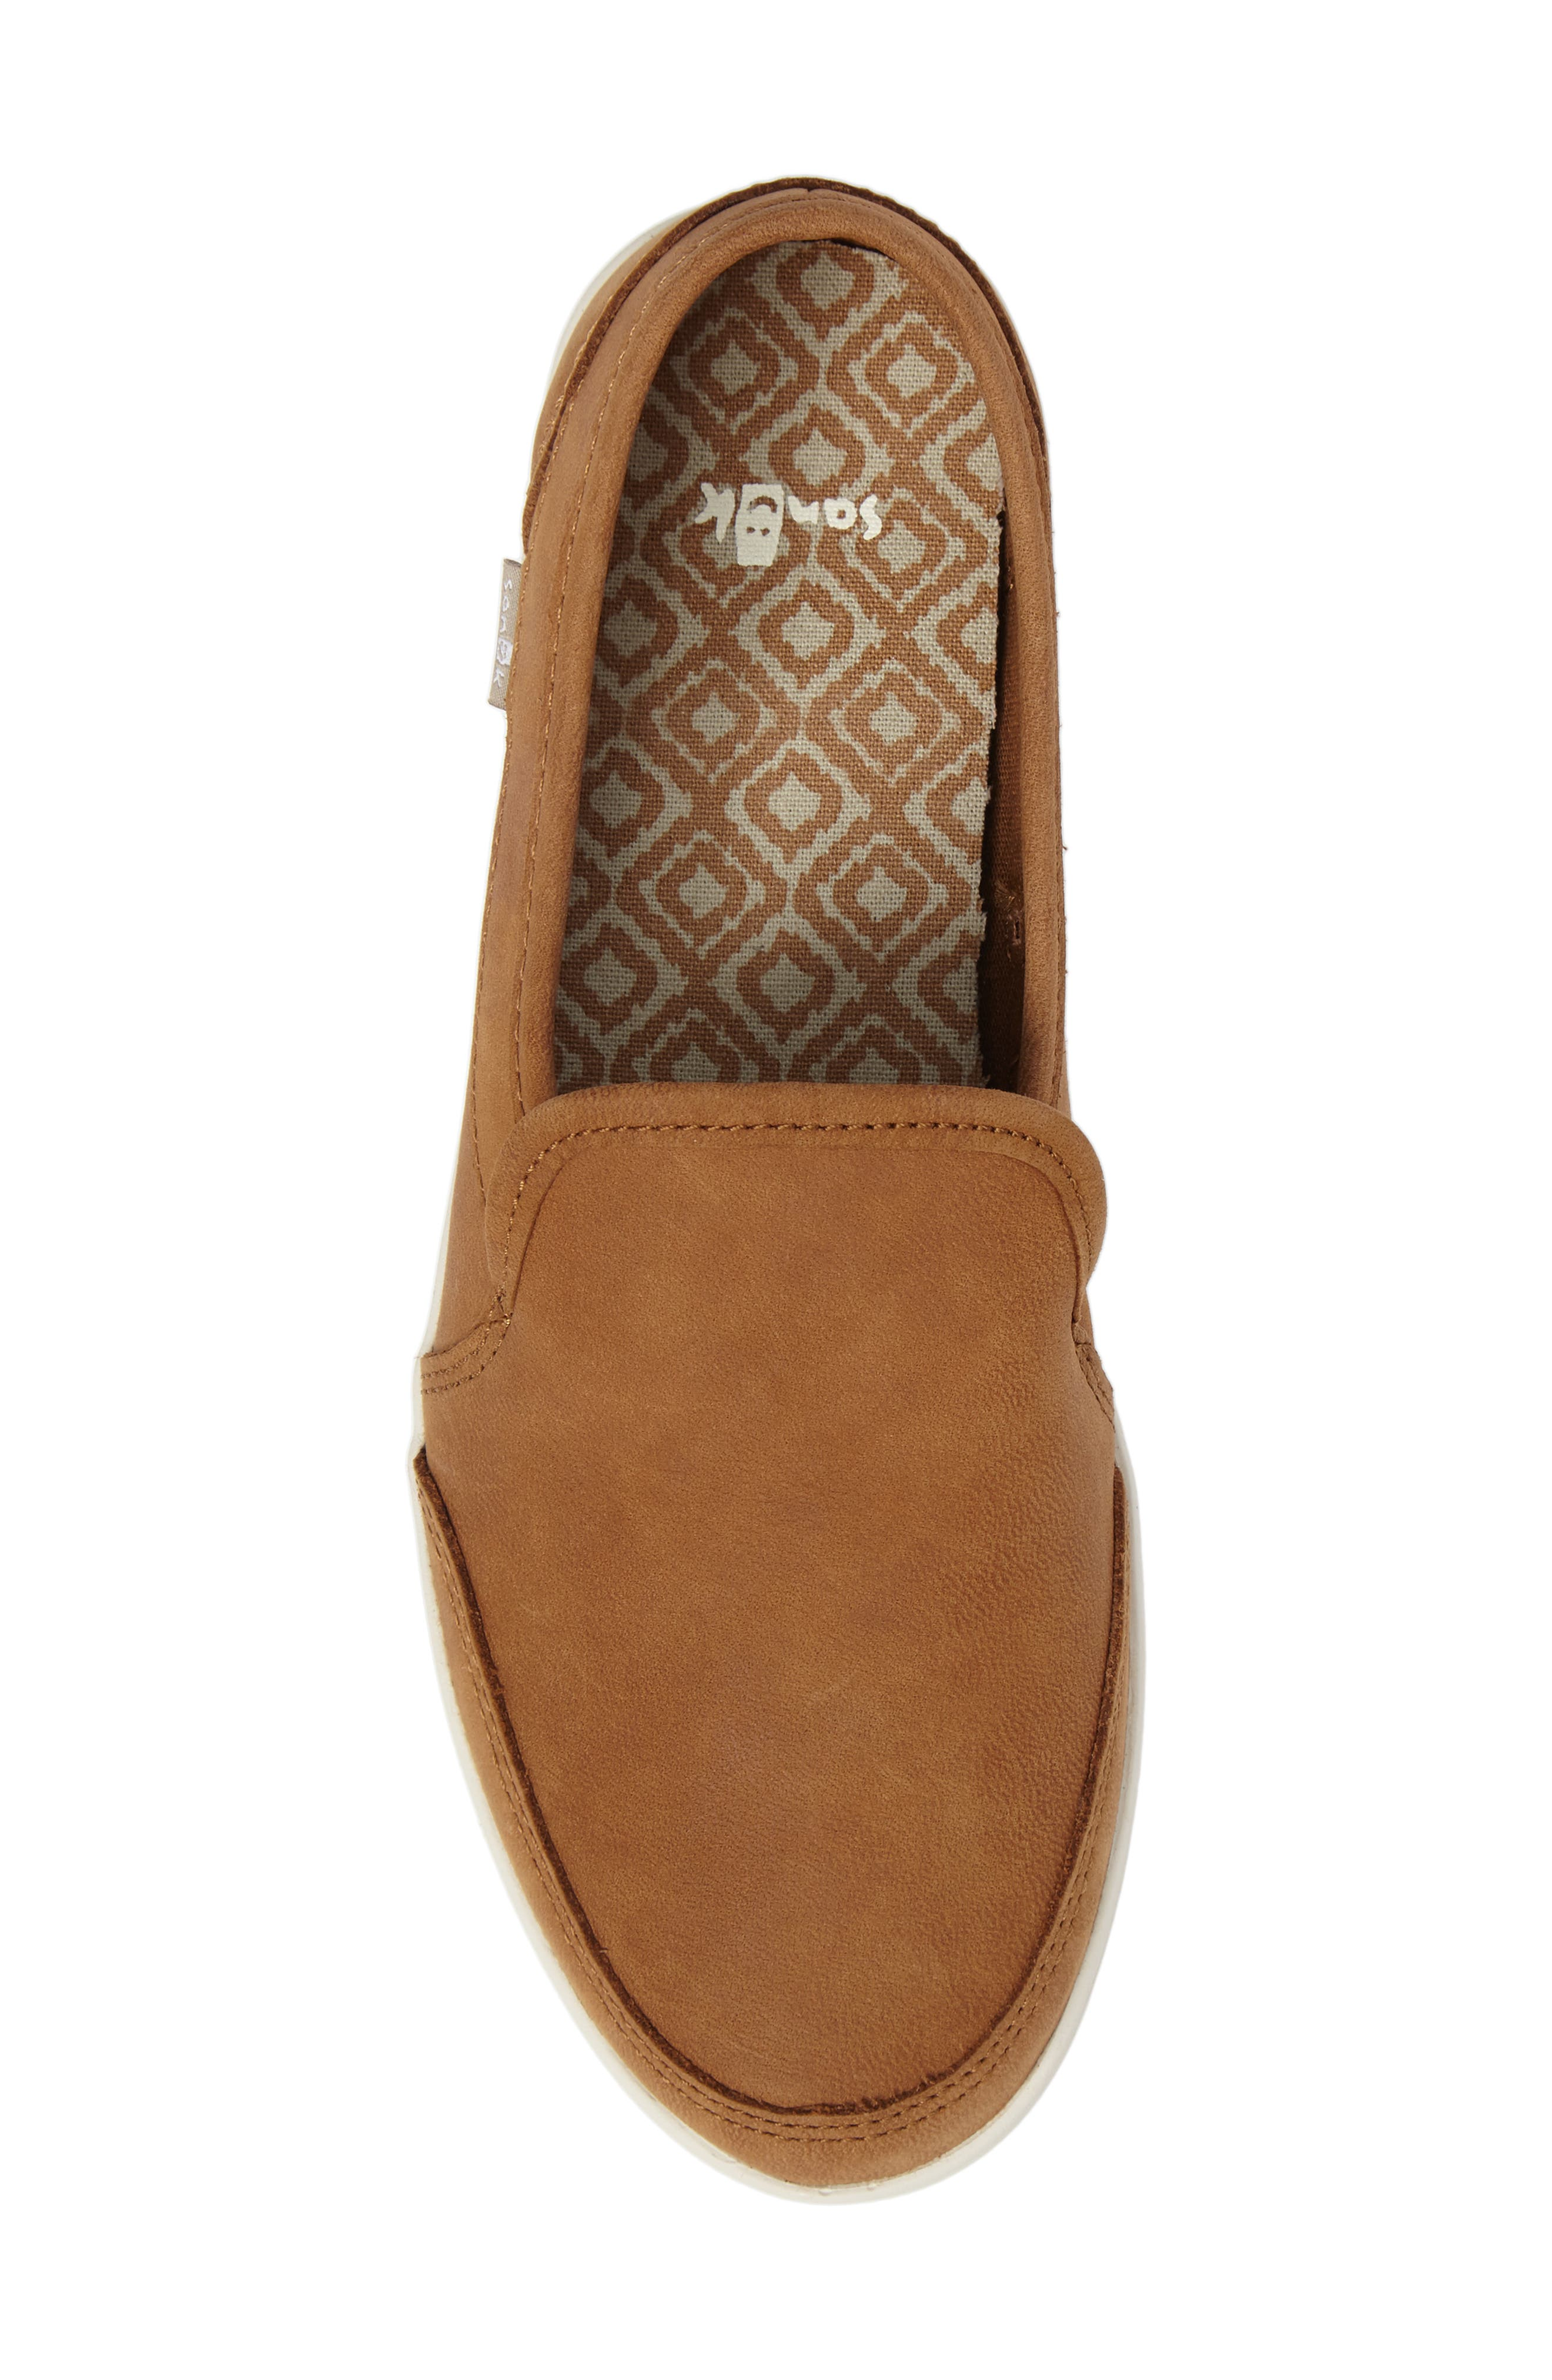 'Pair O Dice' Slip On,                             Alternate thumbnail 5, color,                             Tobacco Brown